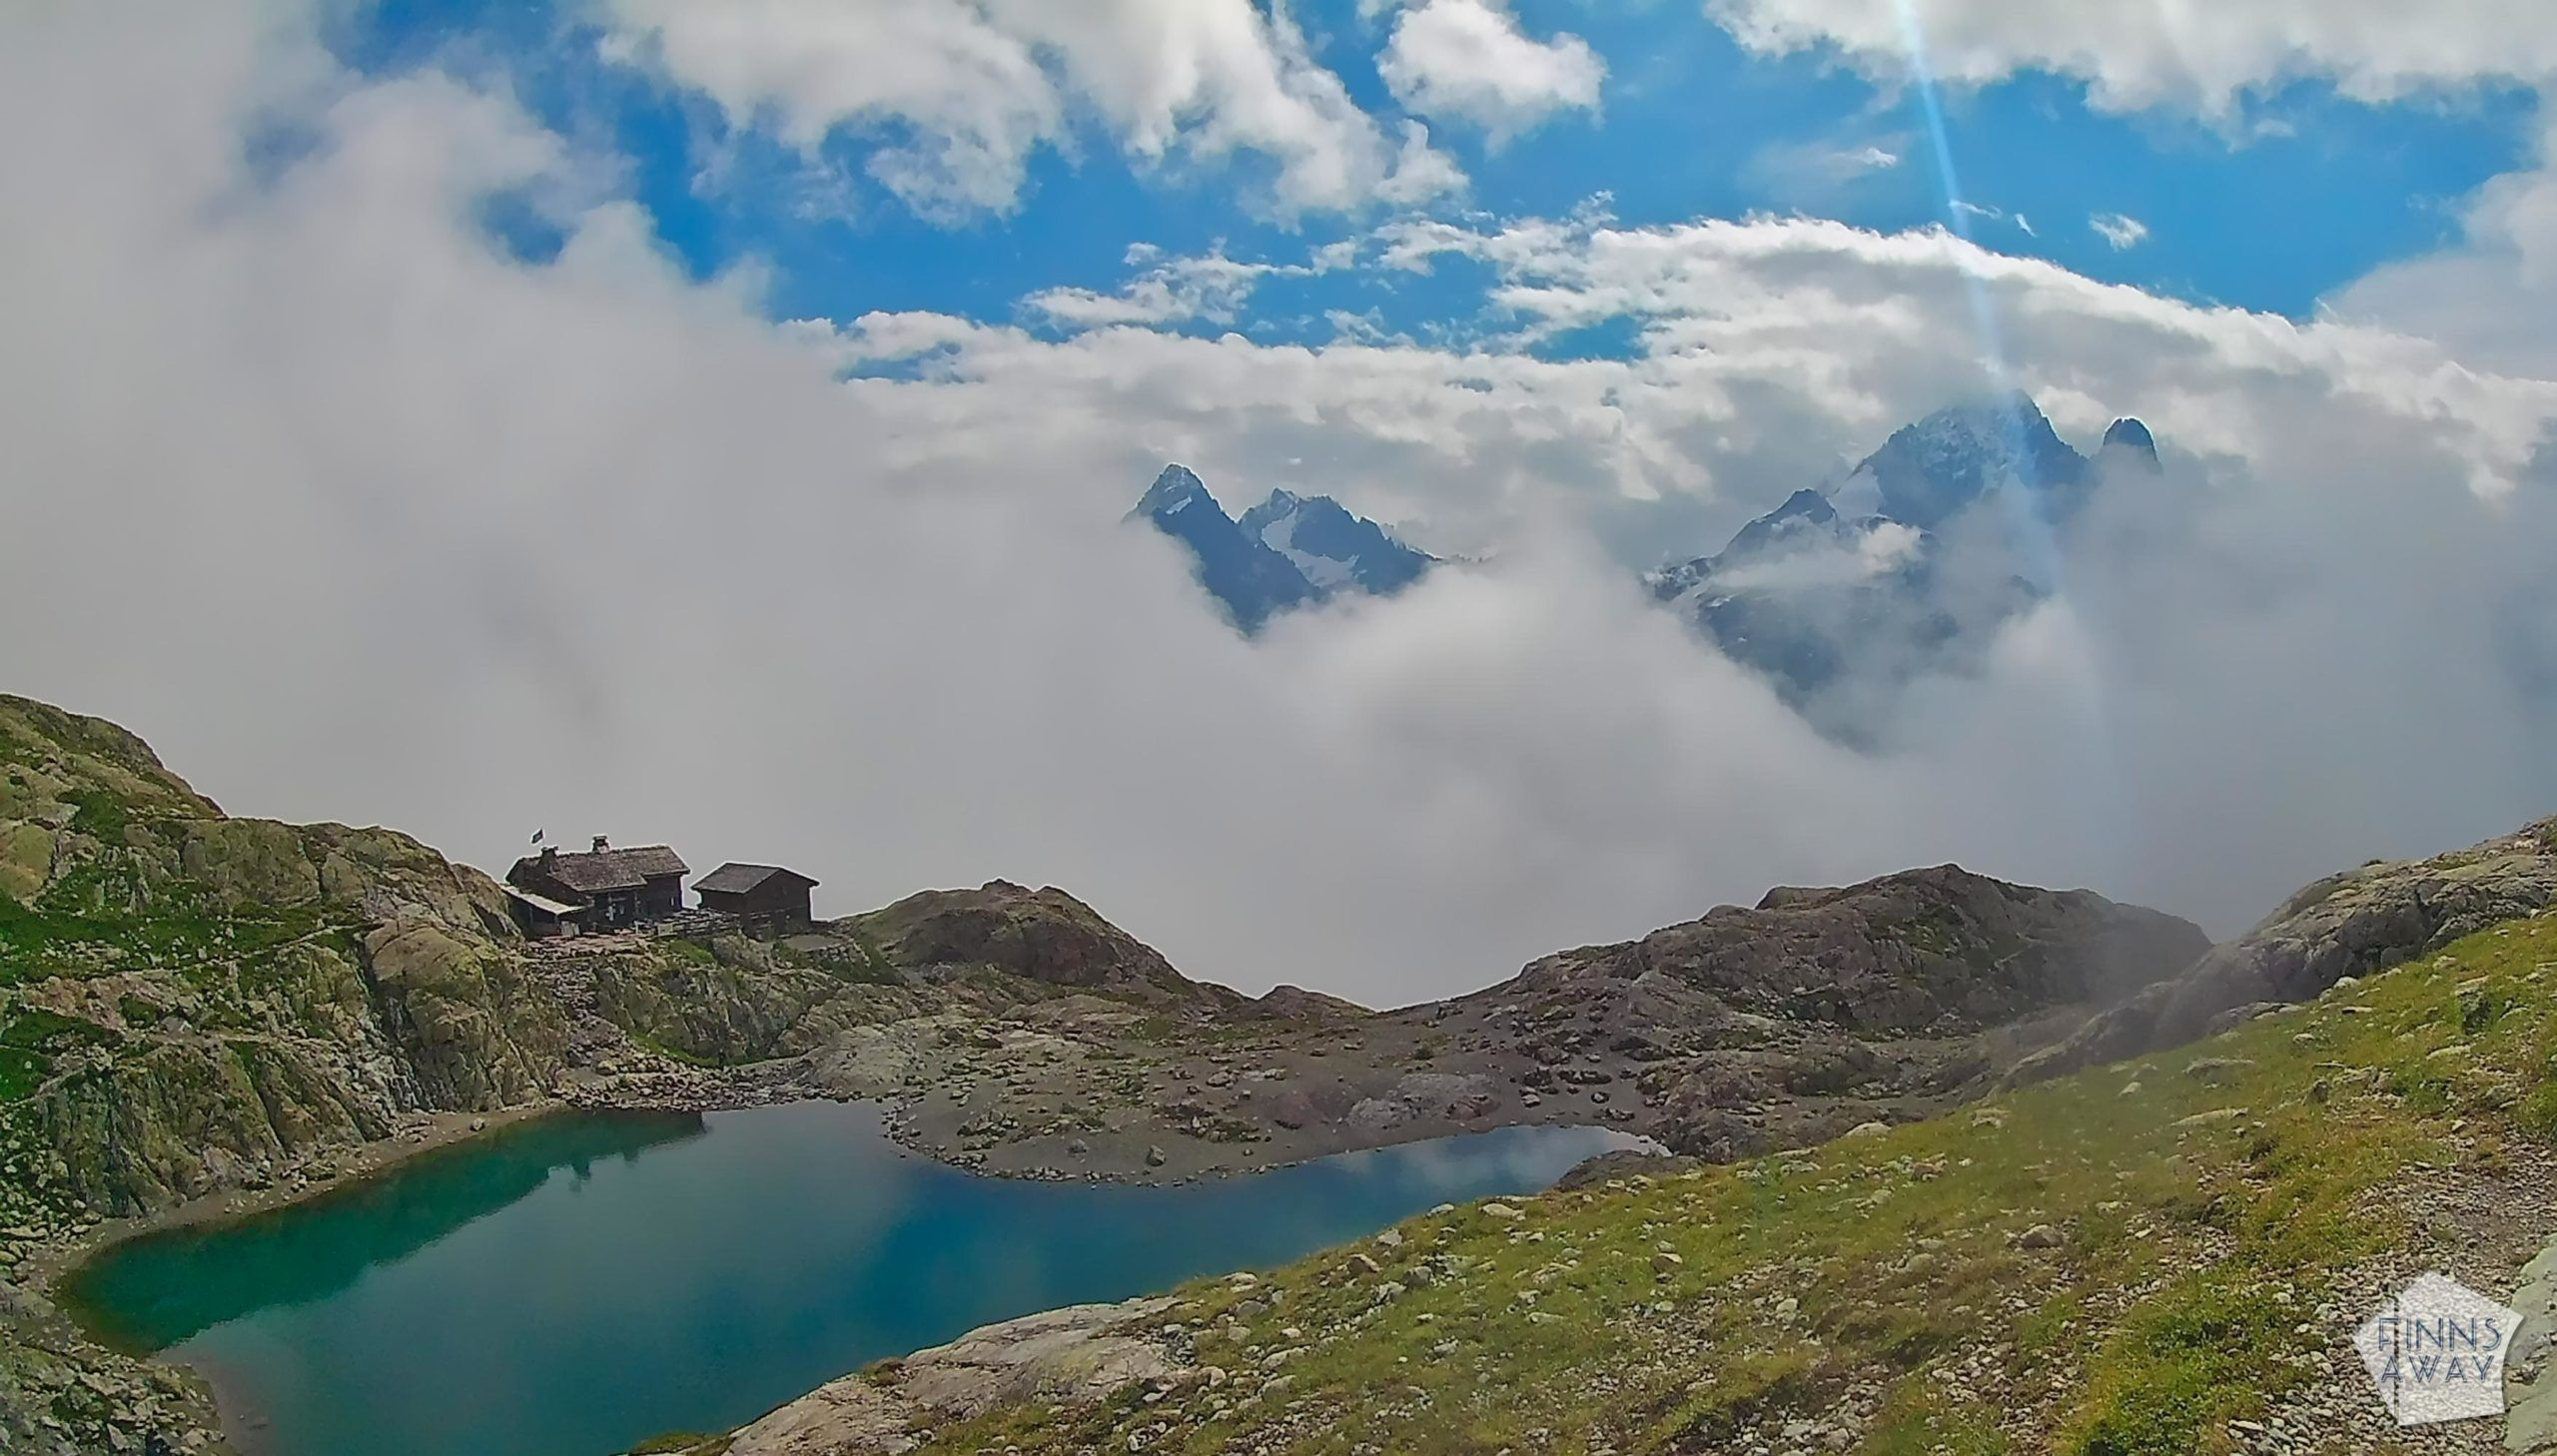 Lac Blanc | Hiking and camping Tour du Mont Blanc mountain trail in the Alps | FinnsAway travel blog